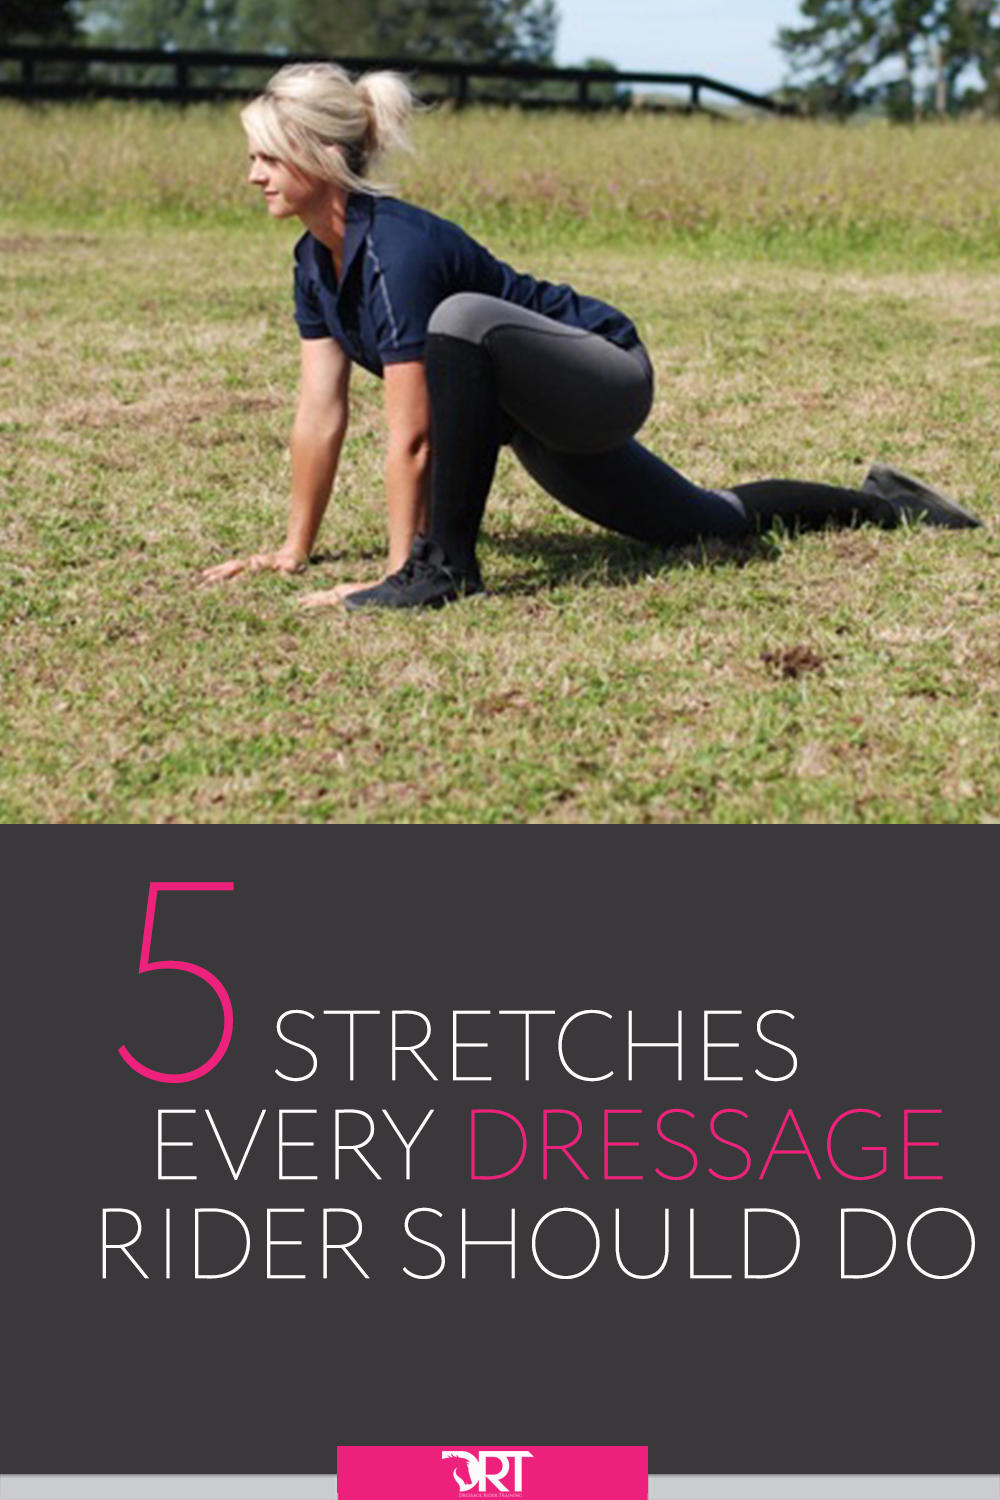 Here are five stretches specific to dressage riders to help your riding posture and balance in the saddle.  #dressage #dressagerider #dressagetraining #dressageexercises